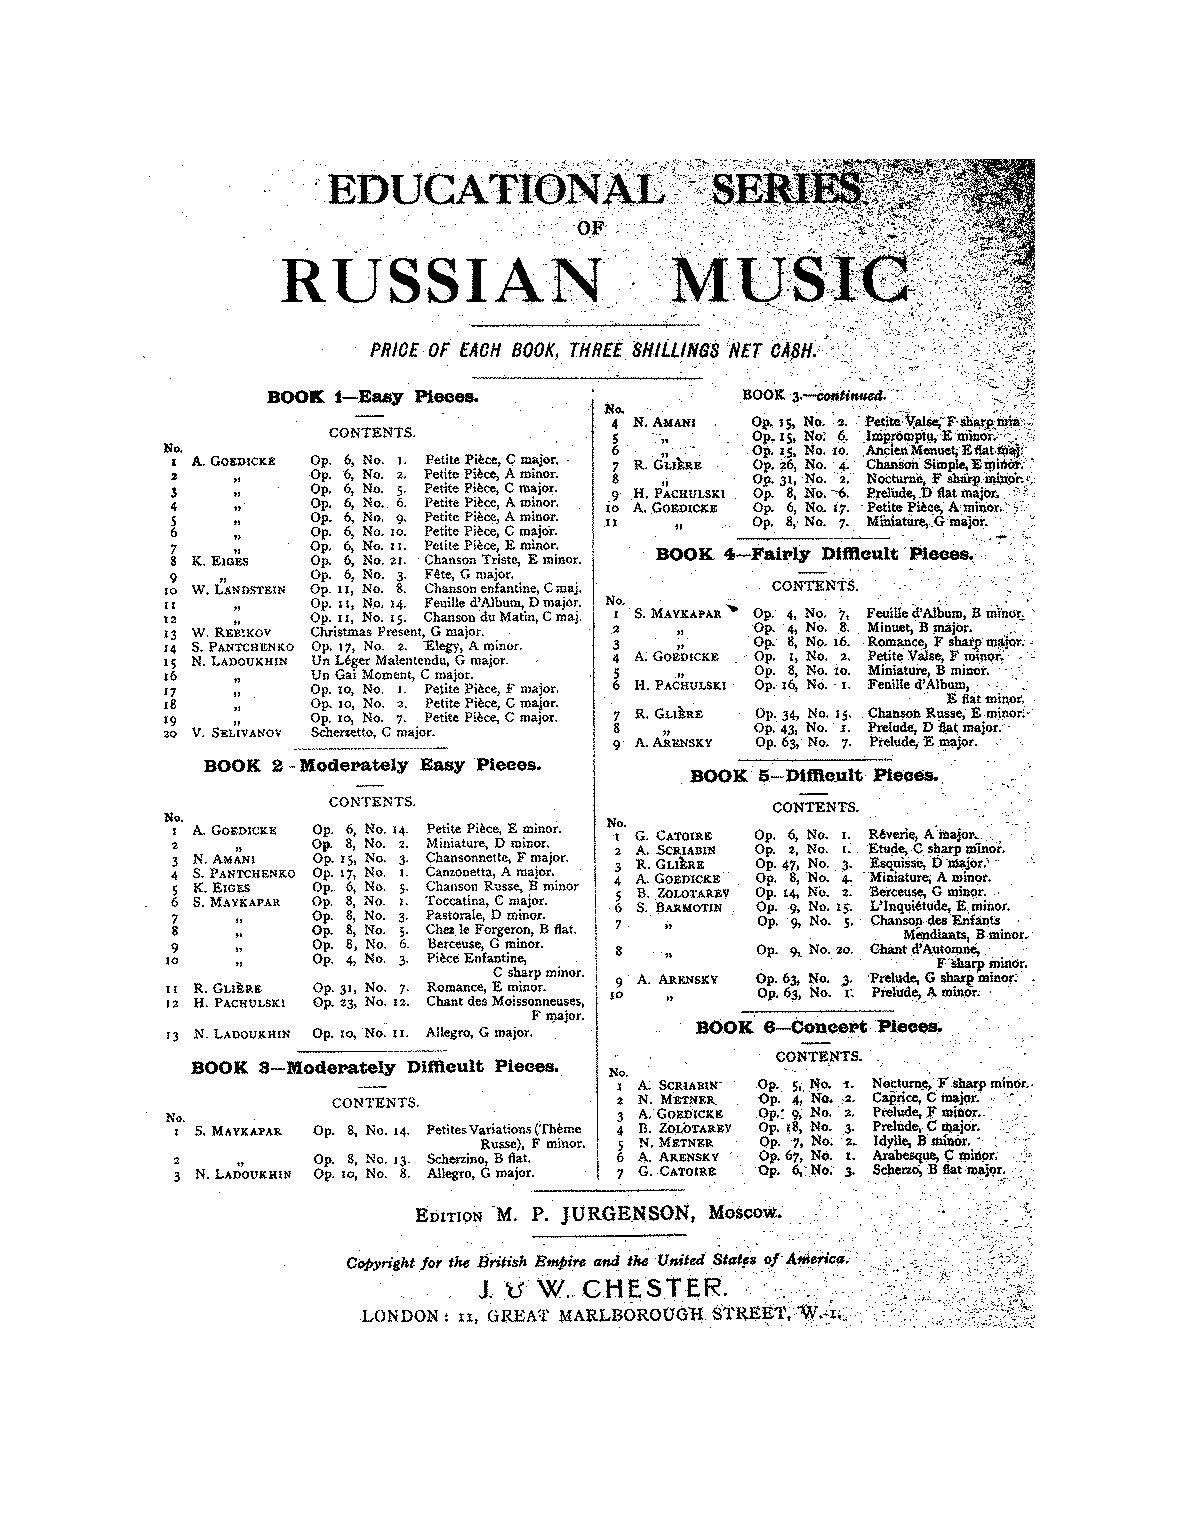 PMLP193469-Educational Series of Russian Music contents.pdf